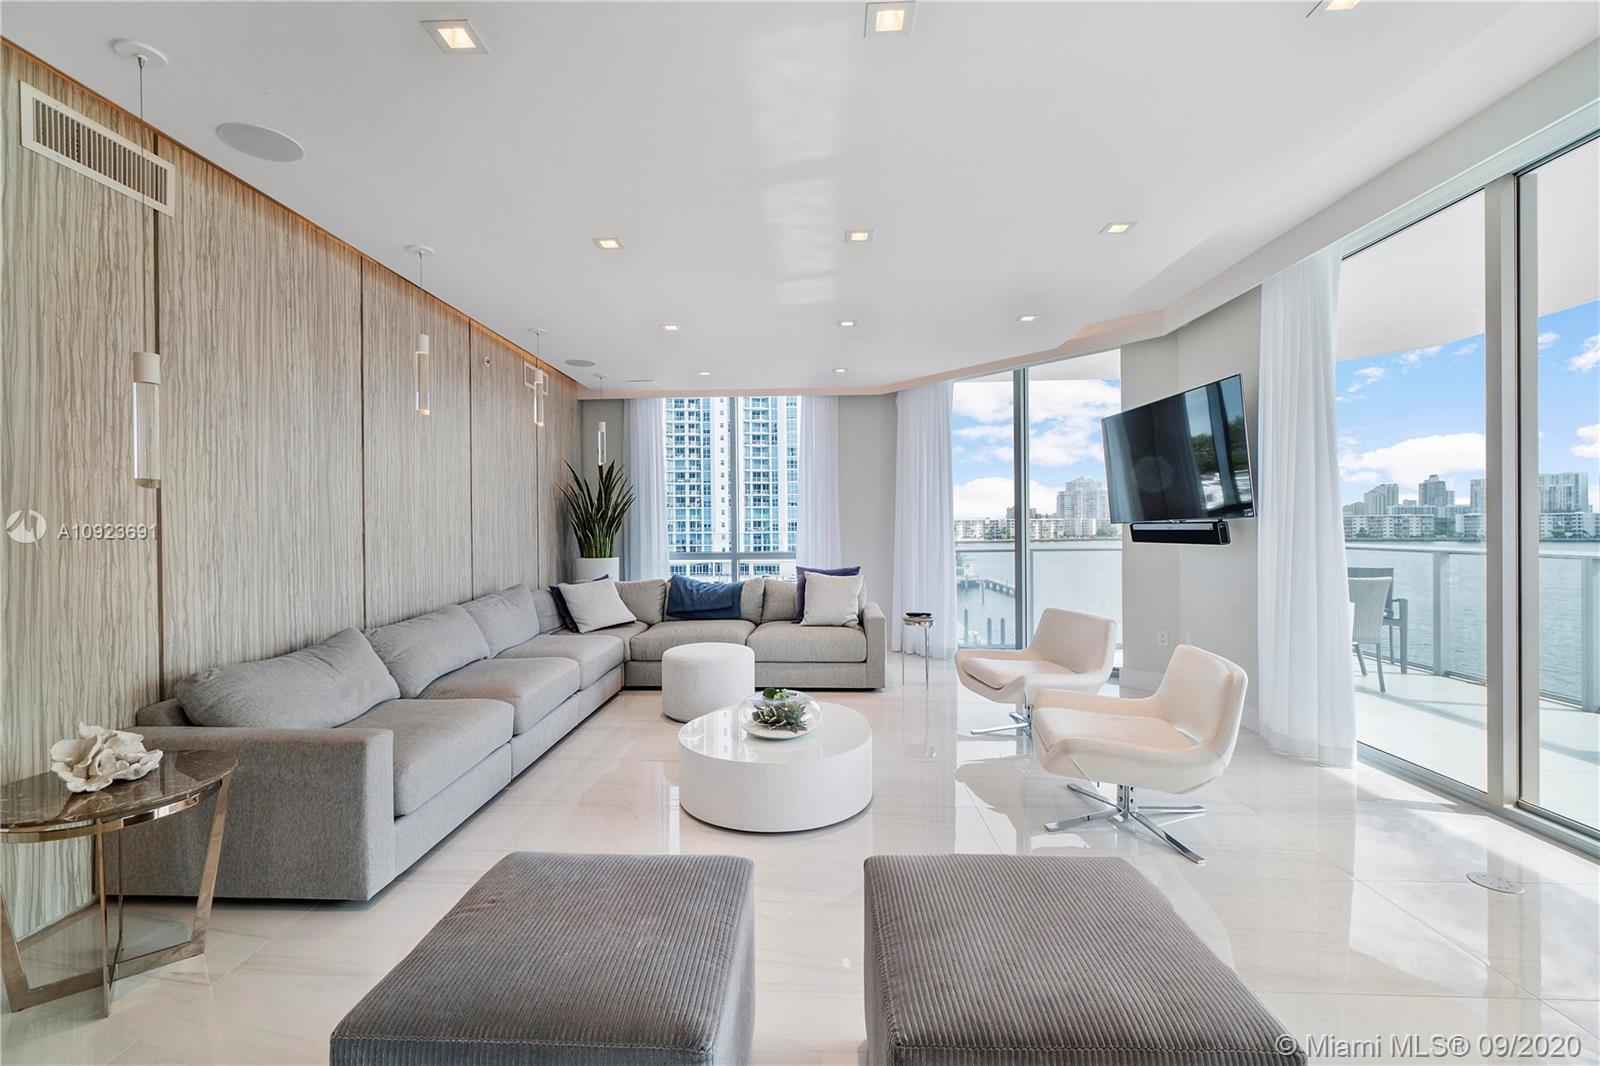 Marina Palms 1 #409 - 17111 Biscayne Blvd #409, North Miami Beach, FL 33160